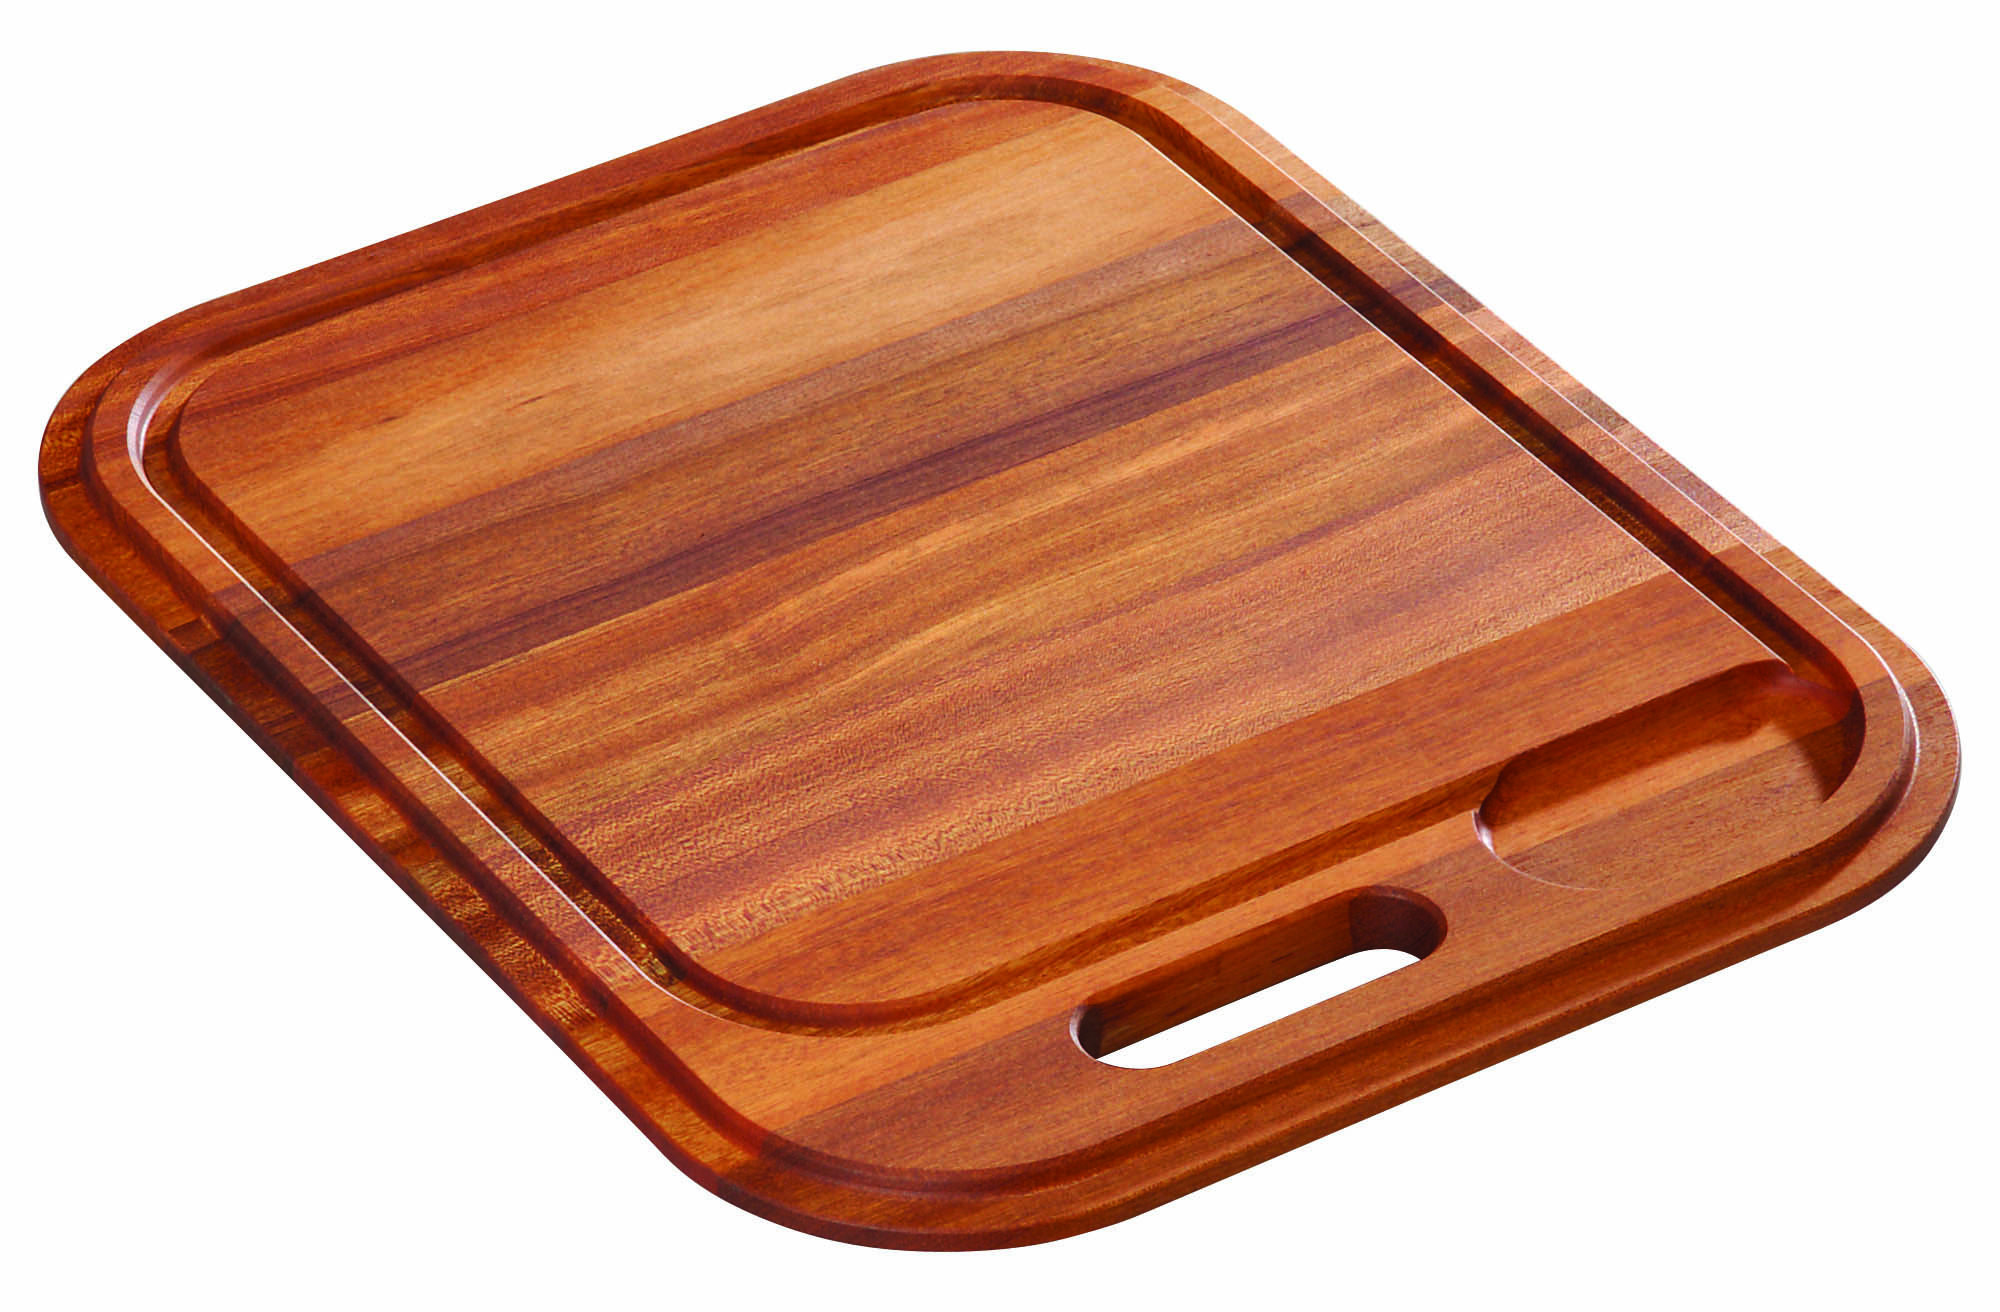 Franke AR-40S Artisan Large Solid Wood Kitchen Accessories Cutting Board